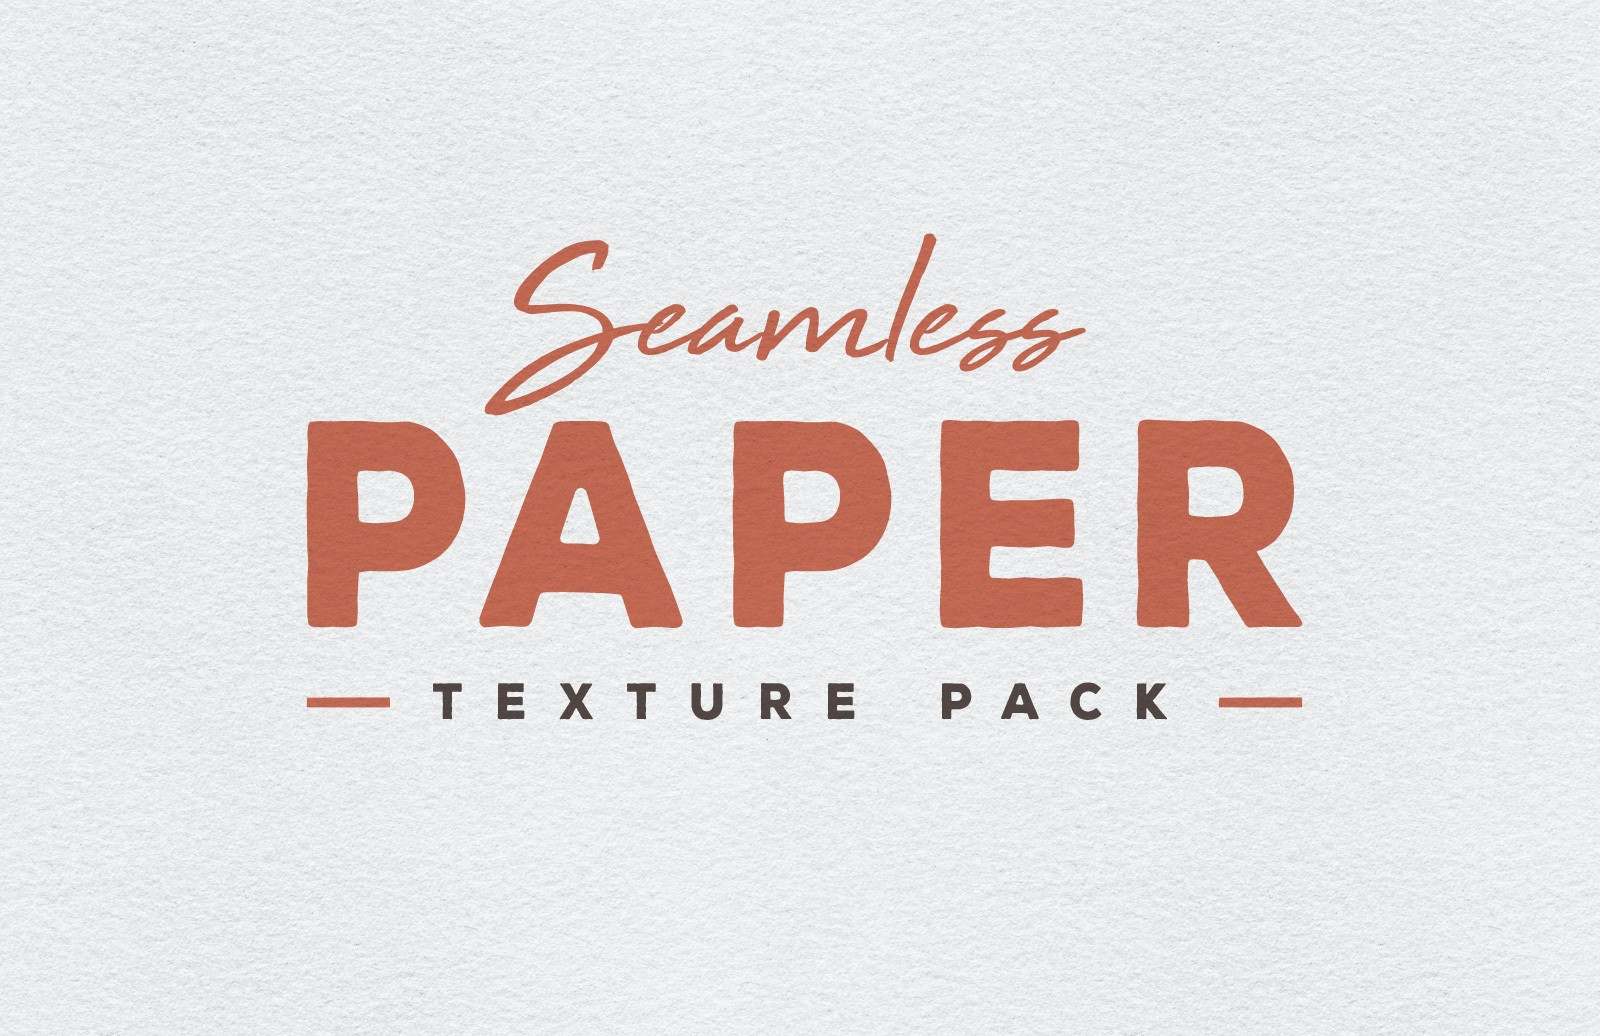 Seamless Paper Texture Pack Preview 1B